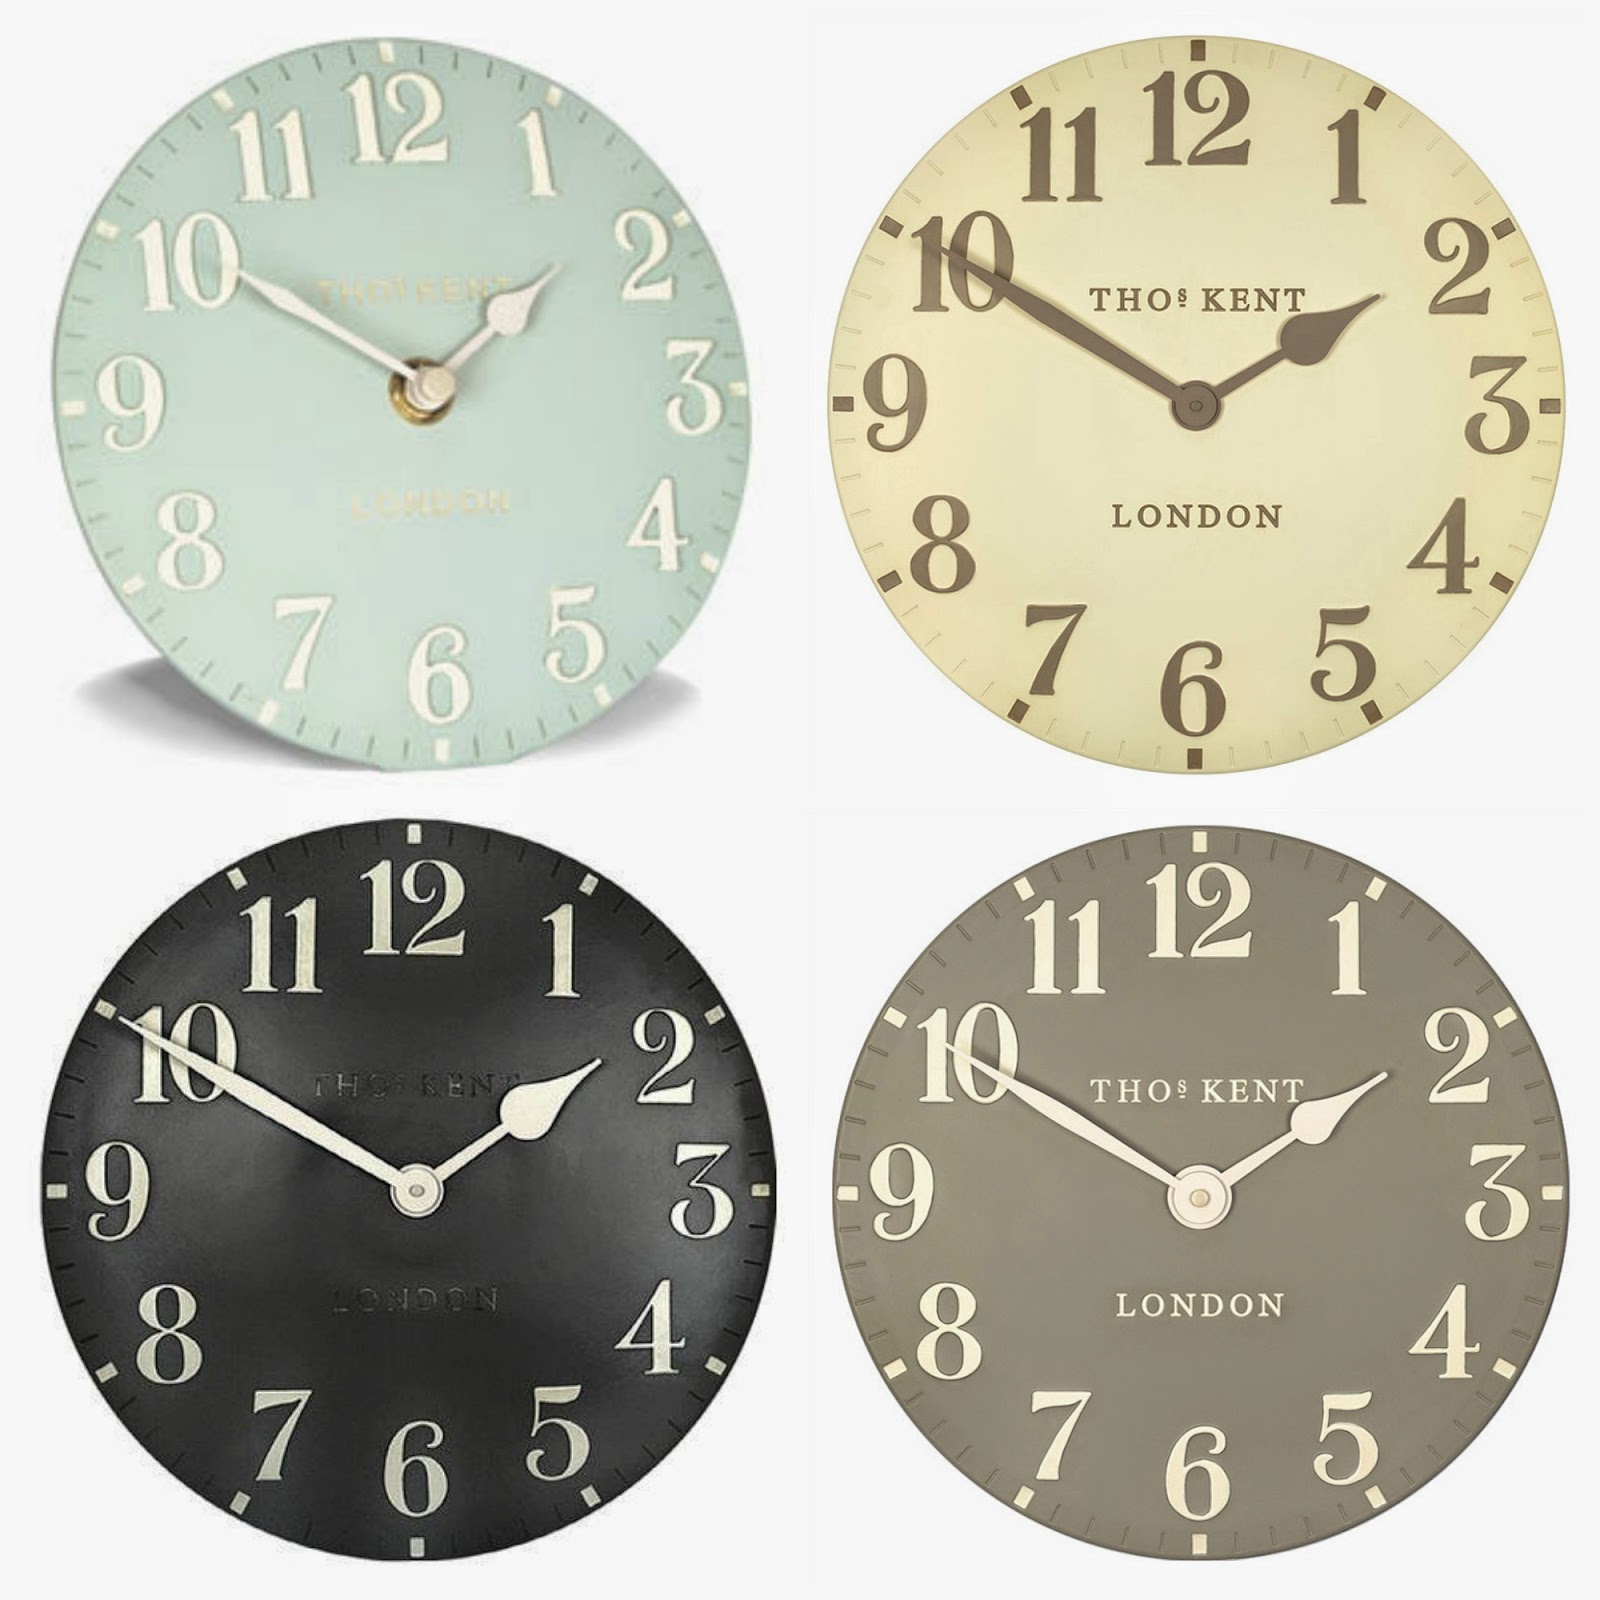 The Ruby Orchard Tick Tock Thomas Kent Stylish Wall Clocks